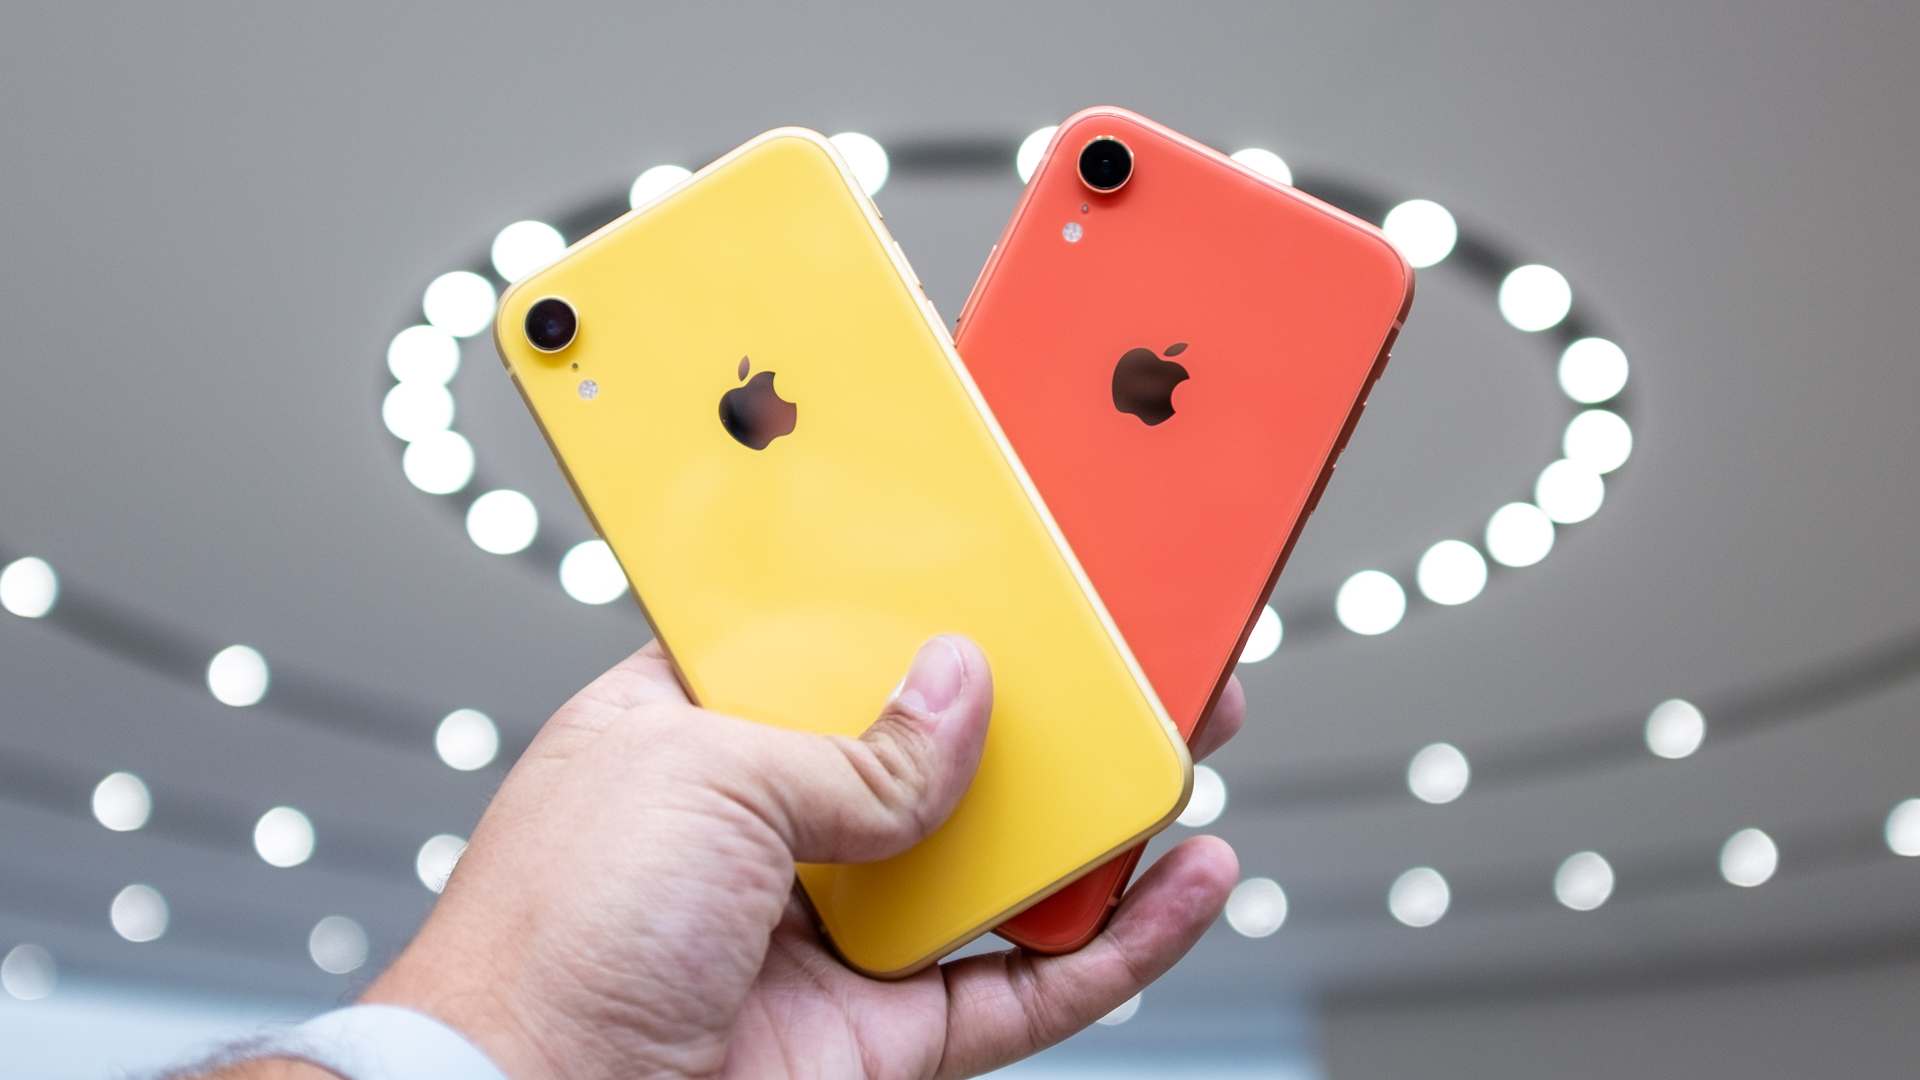 iPhone Xr: Yellow and Coral